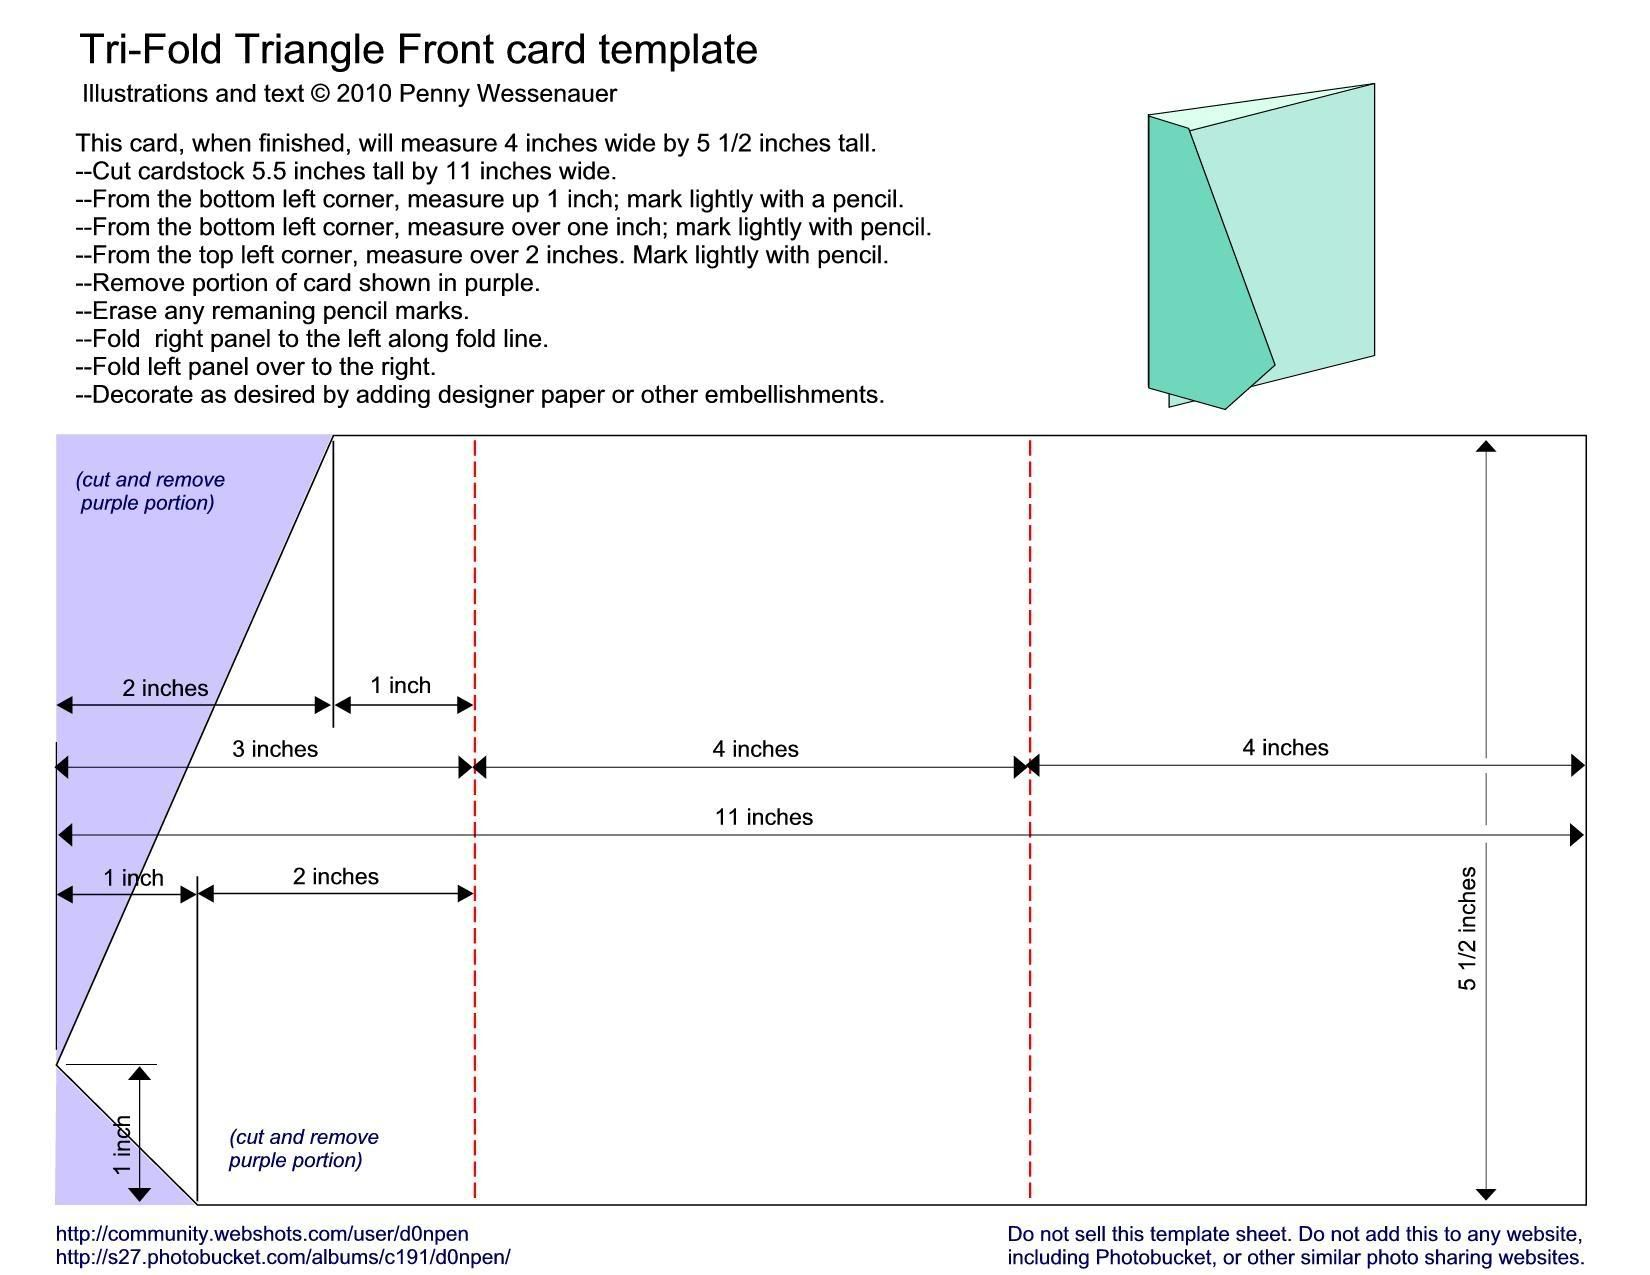 Trifold Triangle Front Card Making Templates Card Templates Tri Fold Cards